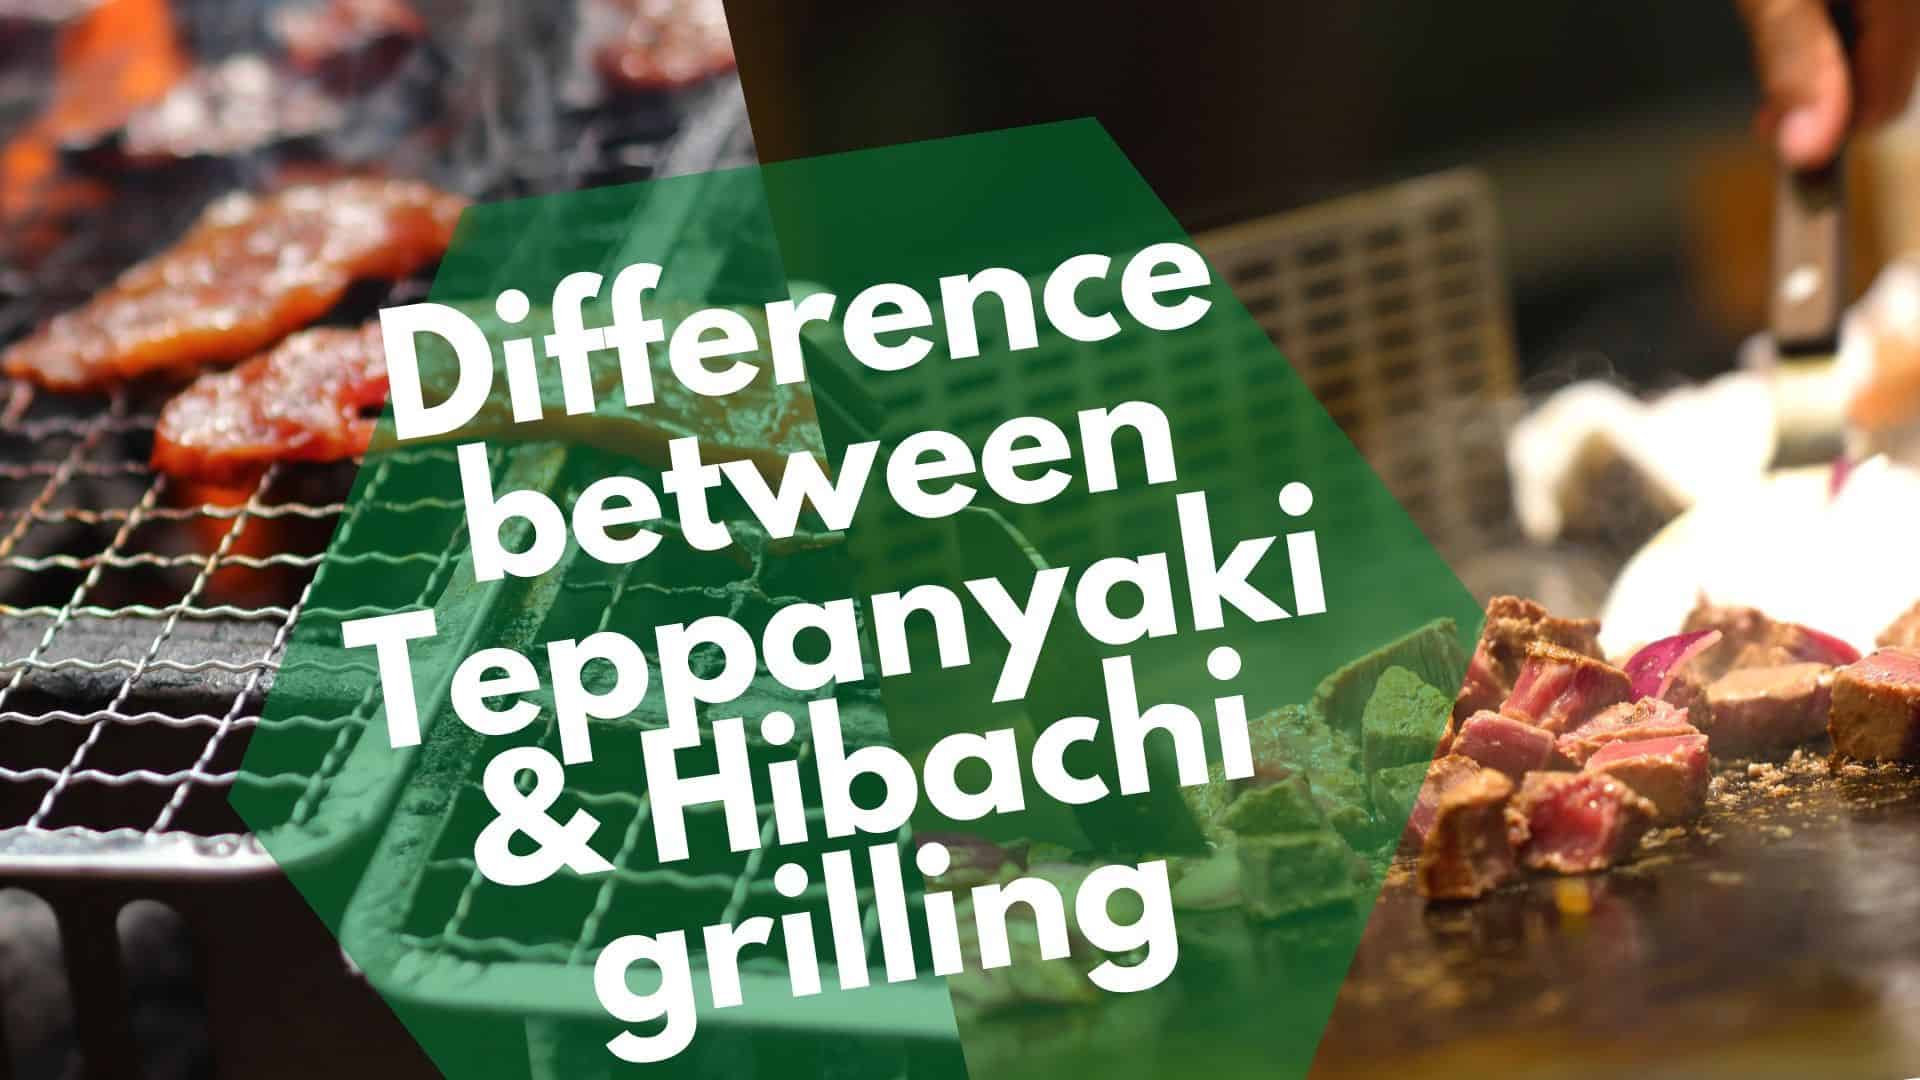 Difference between Teppanyaki & Hibachi grilling